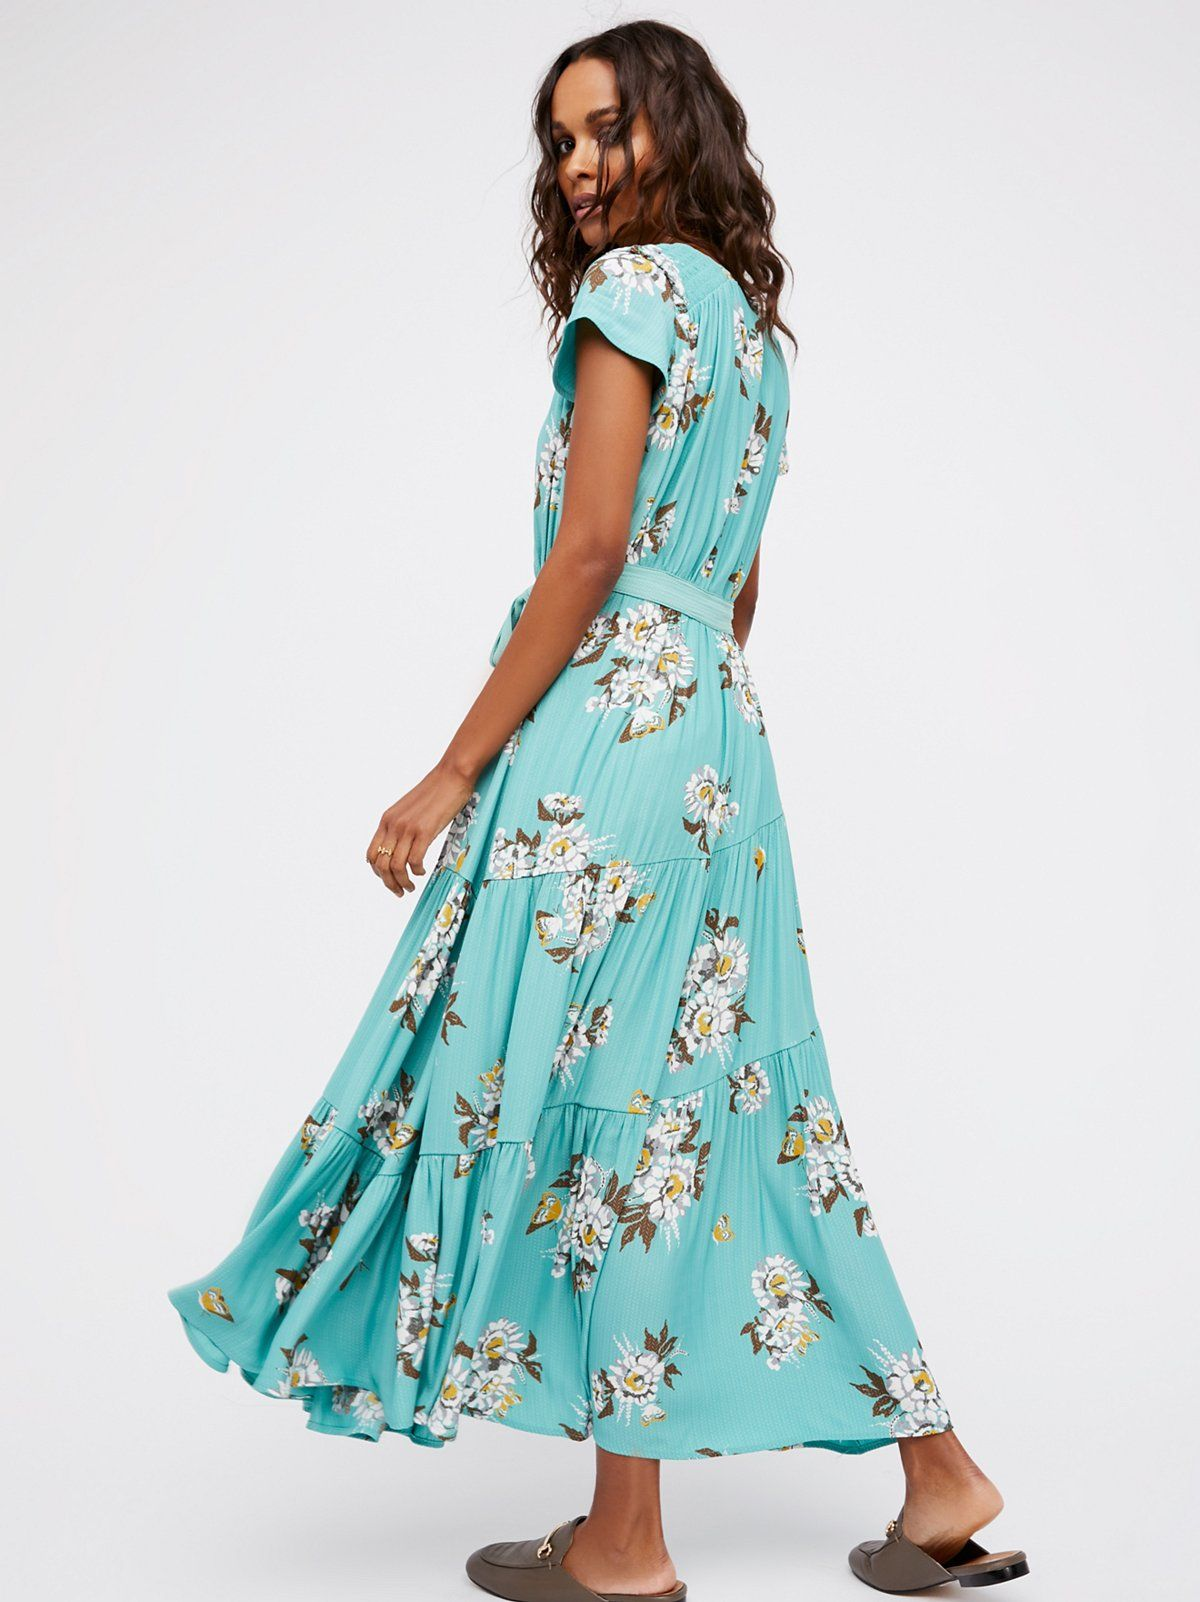 4aabb382cd6 Botanical combo All I Got Printed Maxi Dress at Free People Clothing  Boutique